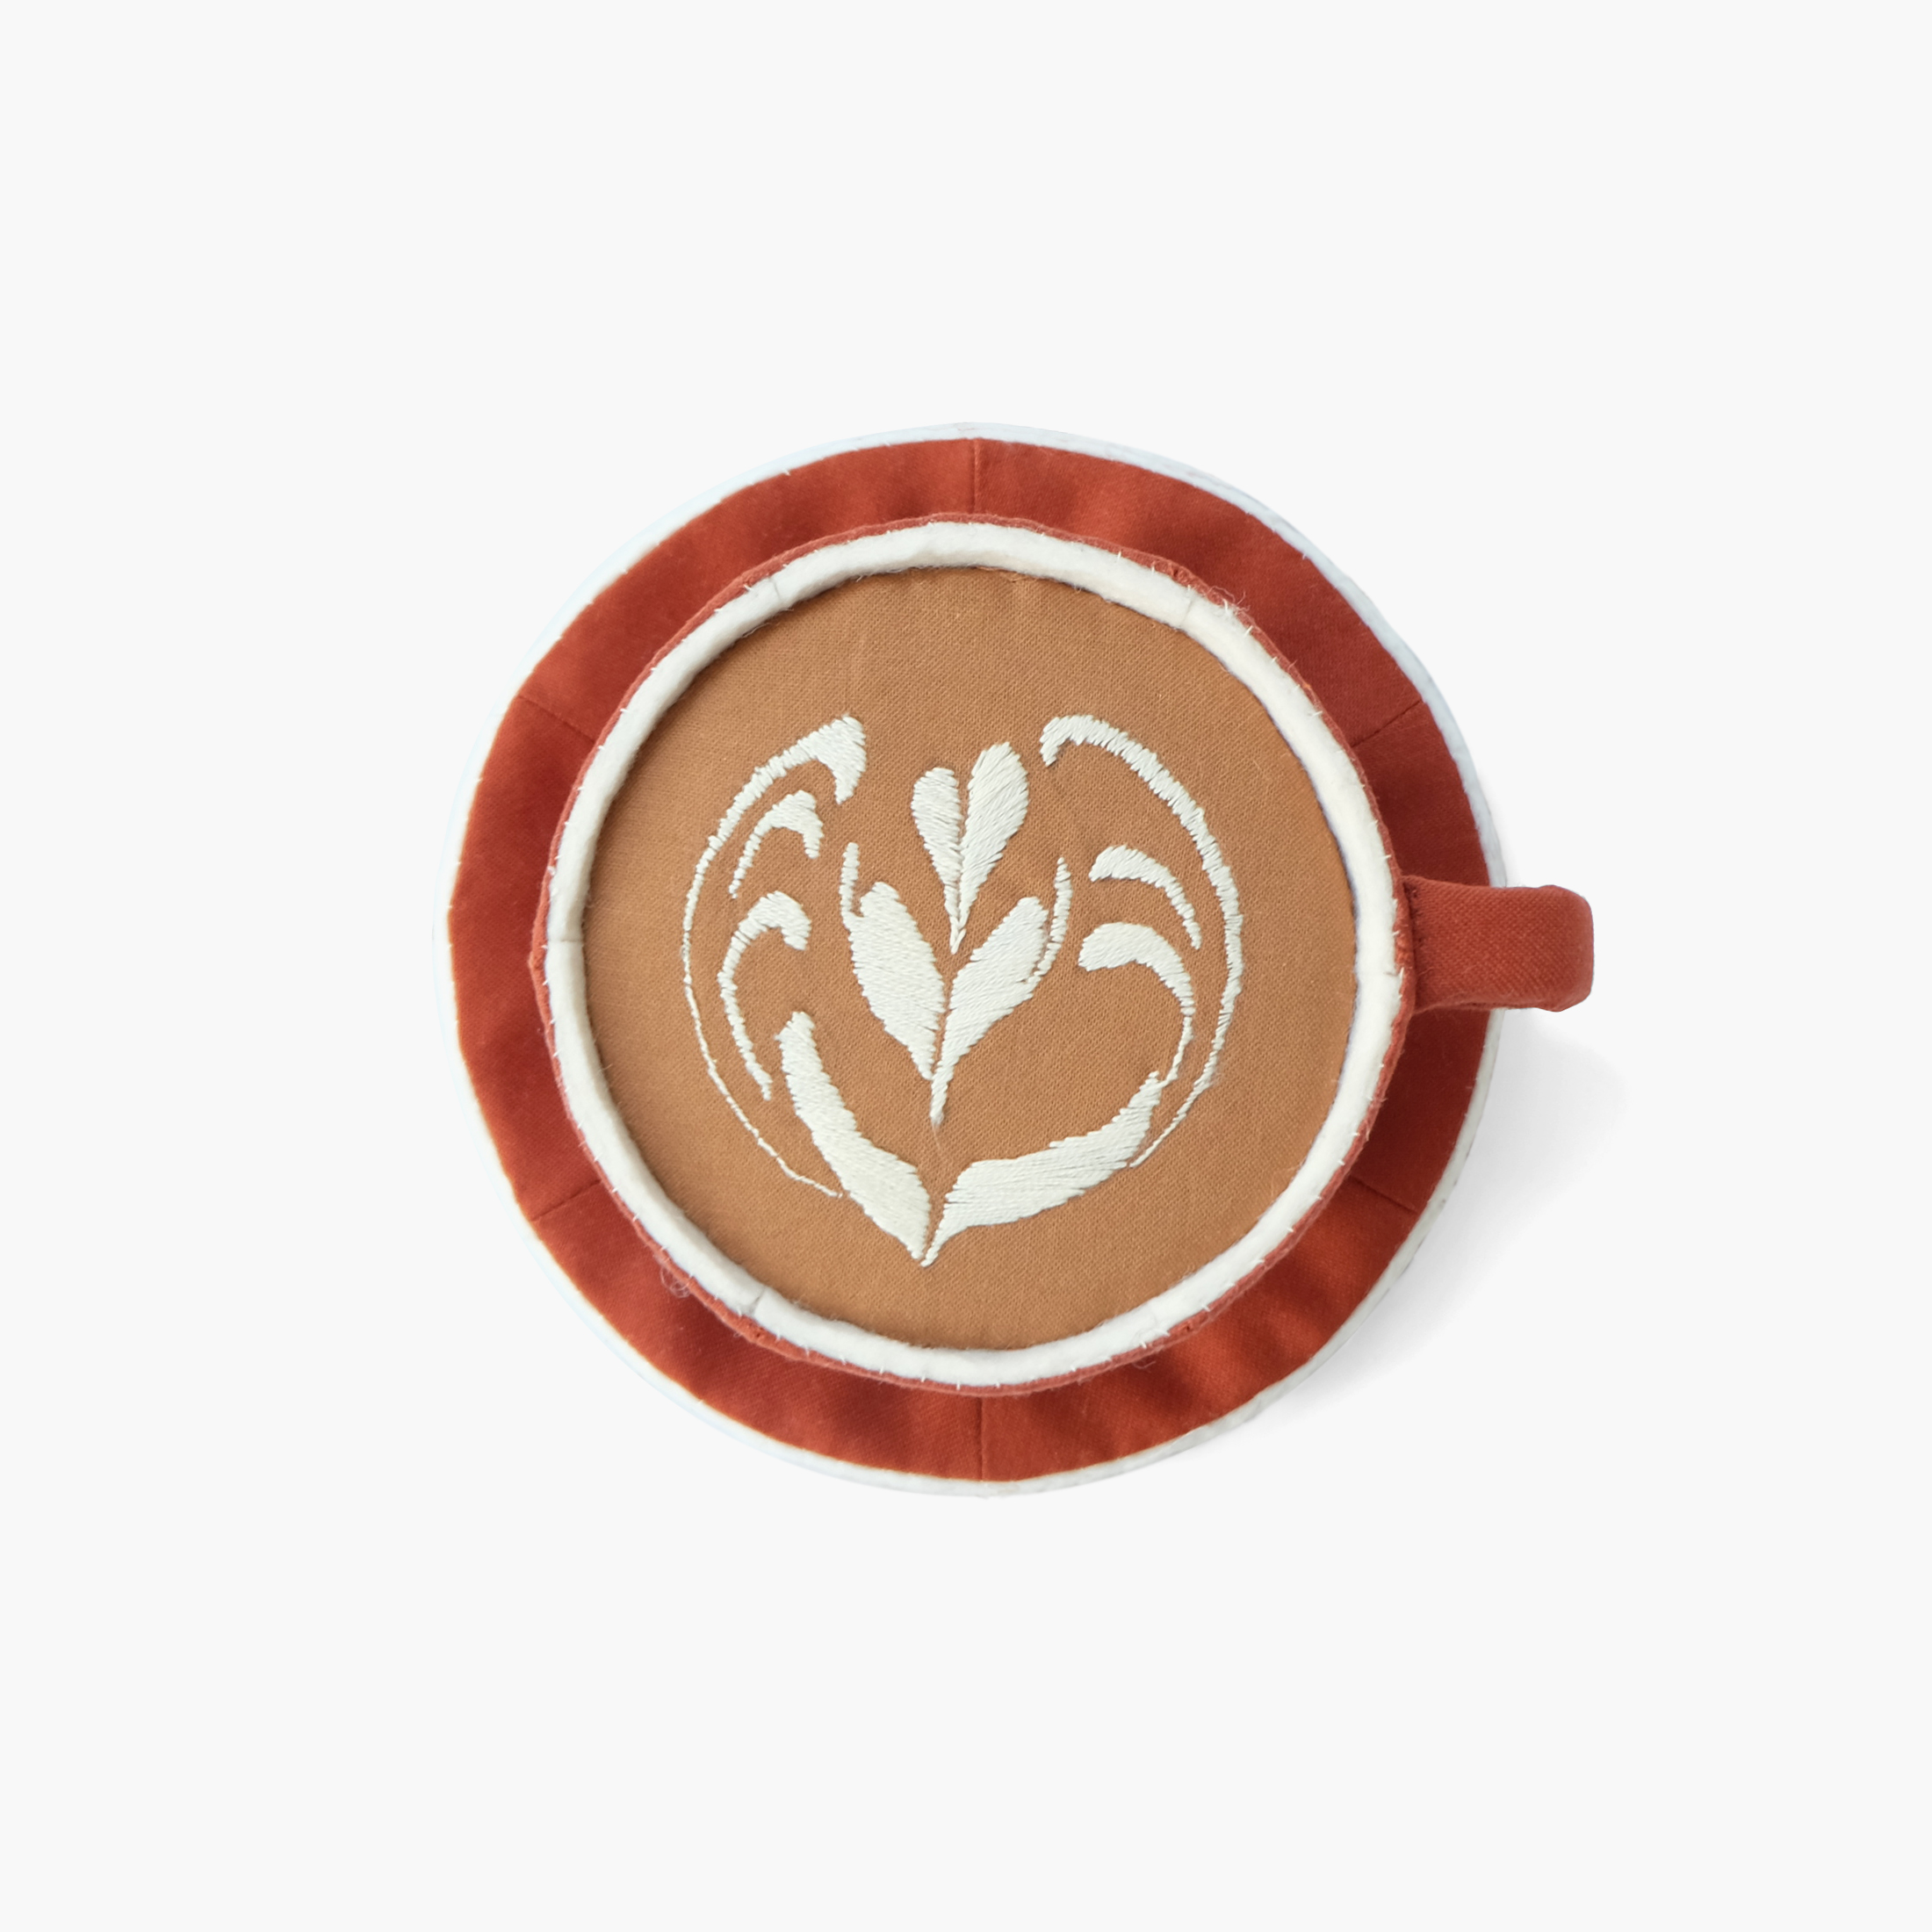 Baristas with Skills  Latte with leaf art from The Mill   Foam, fiberfill, felt, cotton cloth, embroidery floss 3.125 x 6 x 6 in 2015